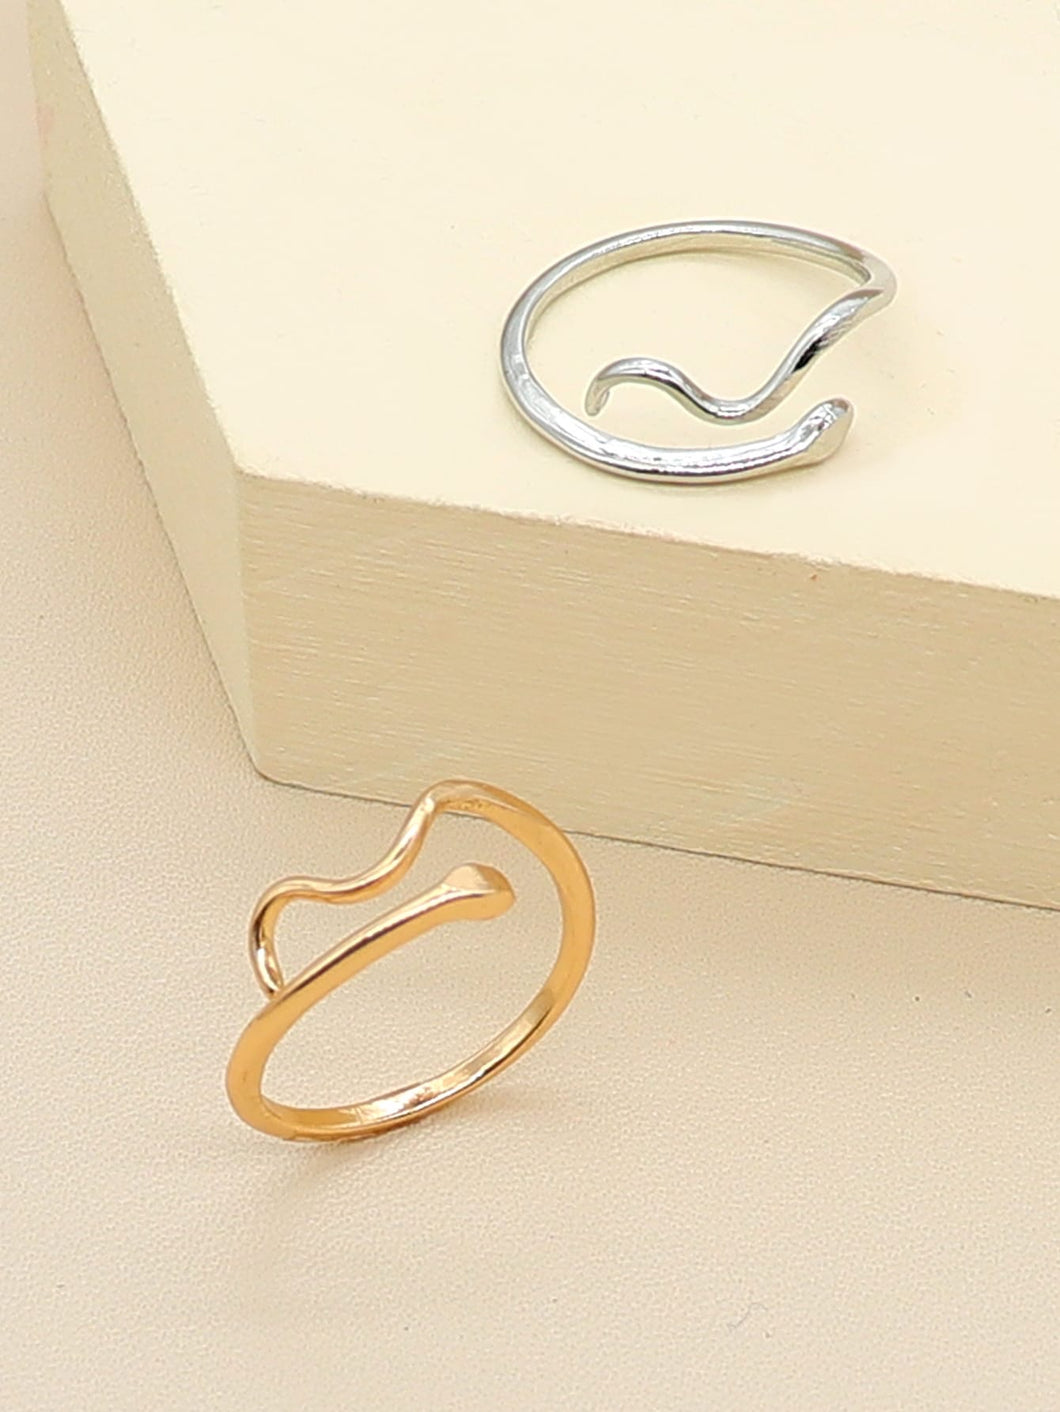 Savanna wave rings